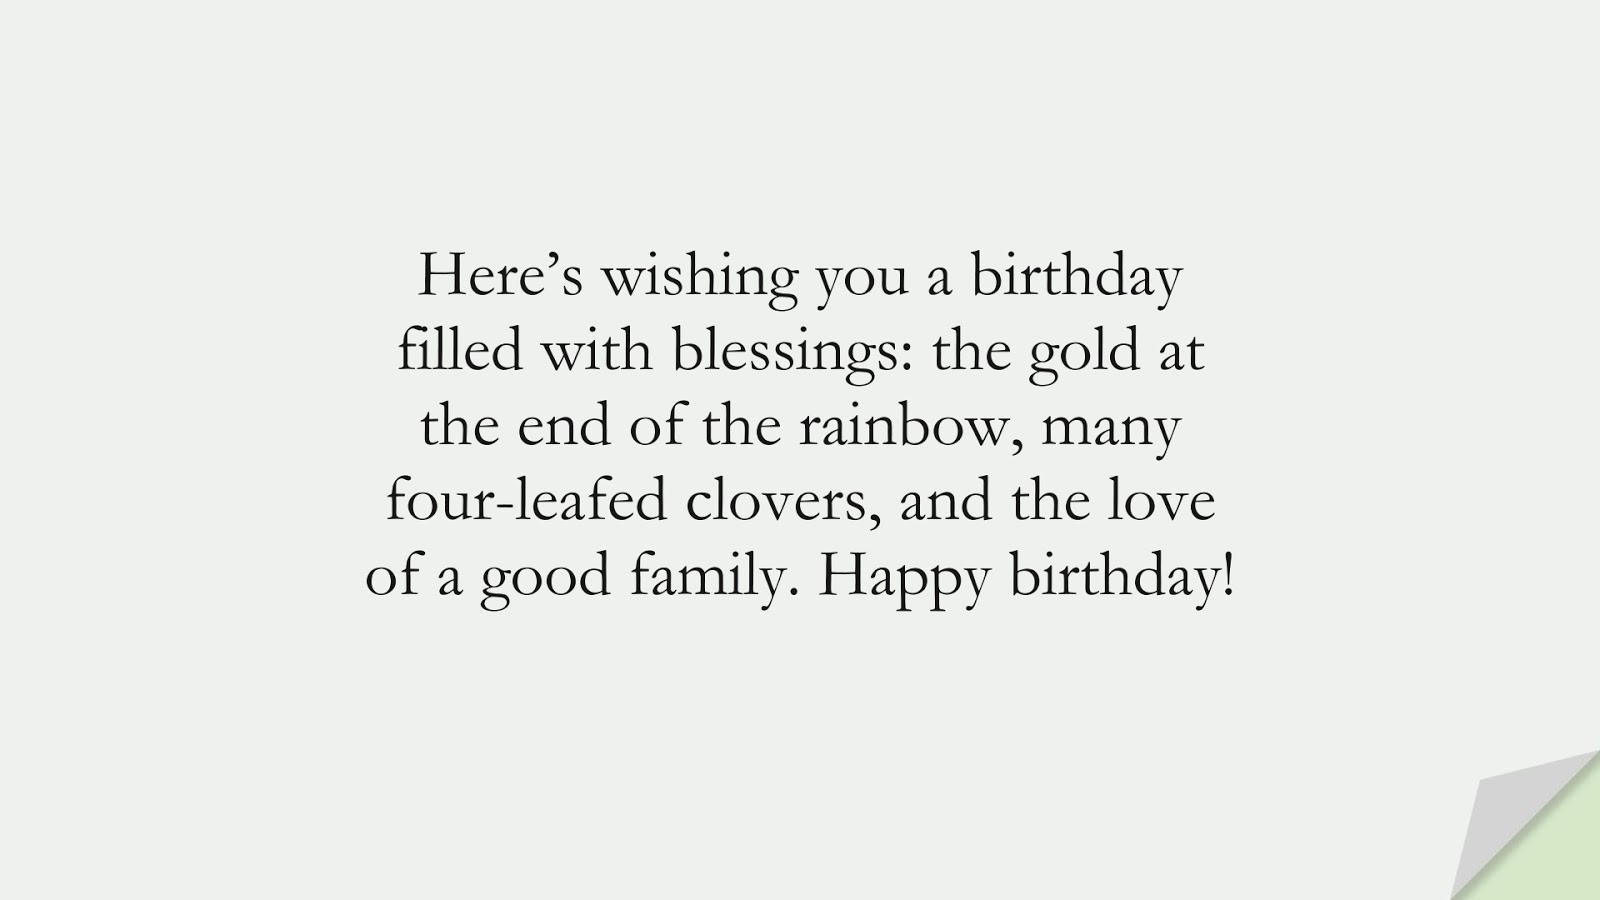 Here's wishing you a birthday filled with blessings: the gold at the end of the rainbow, many four-leafed clovers, and the love of a good family. Happy birthday!FALSE